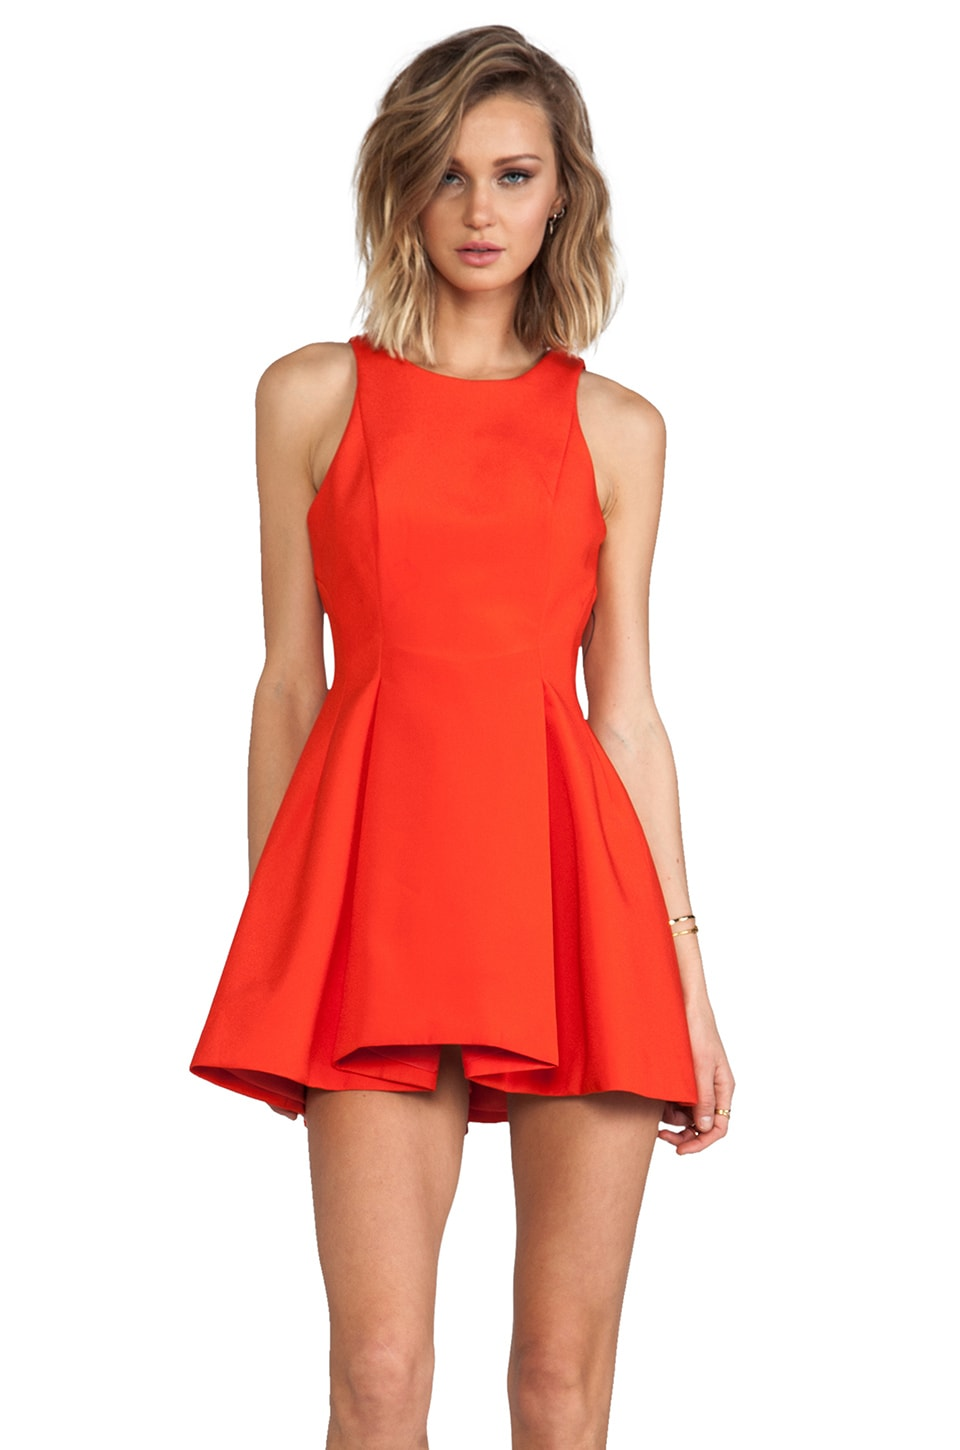 C/MEO Gerome Dress in Jaffa Red